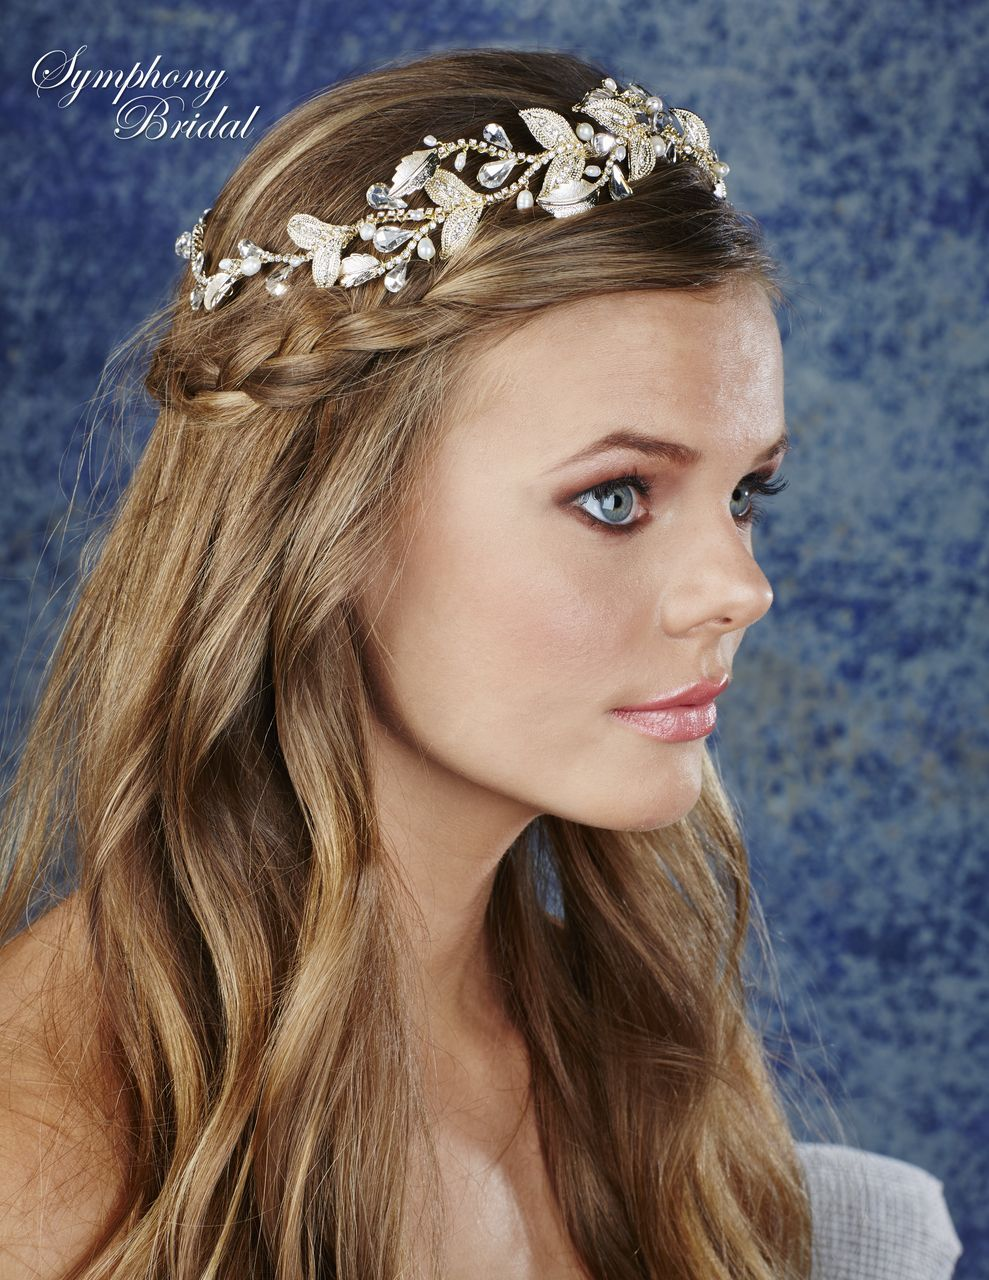 Beautiful Golden Pearl and Rhinestone Halo Headpiece Symphony Bridal HL121 - Affordable Elegance Bridal -